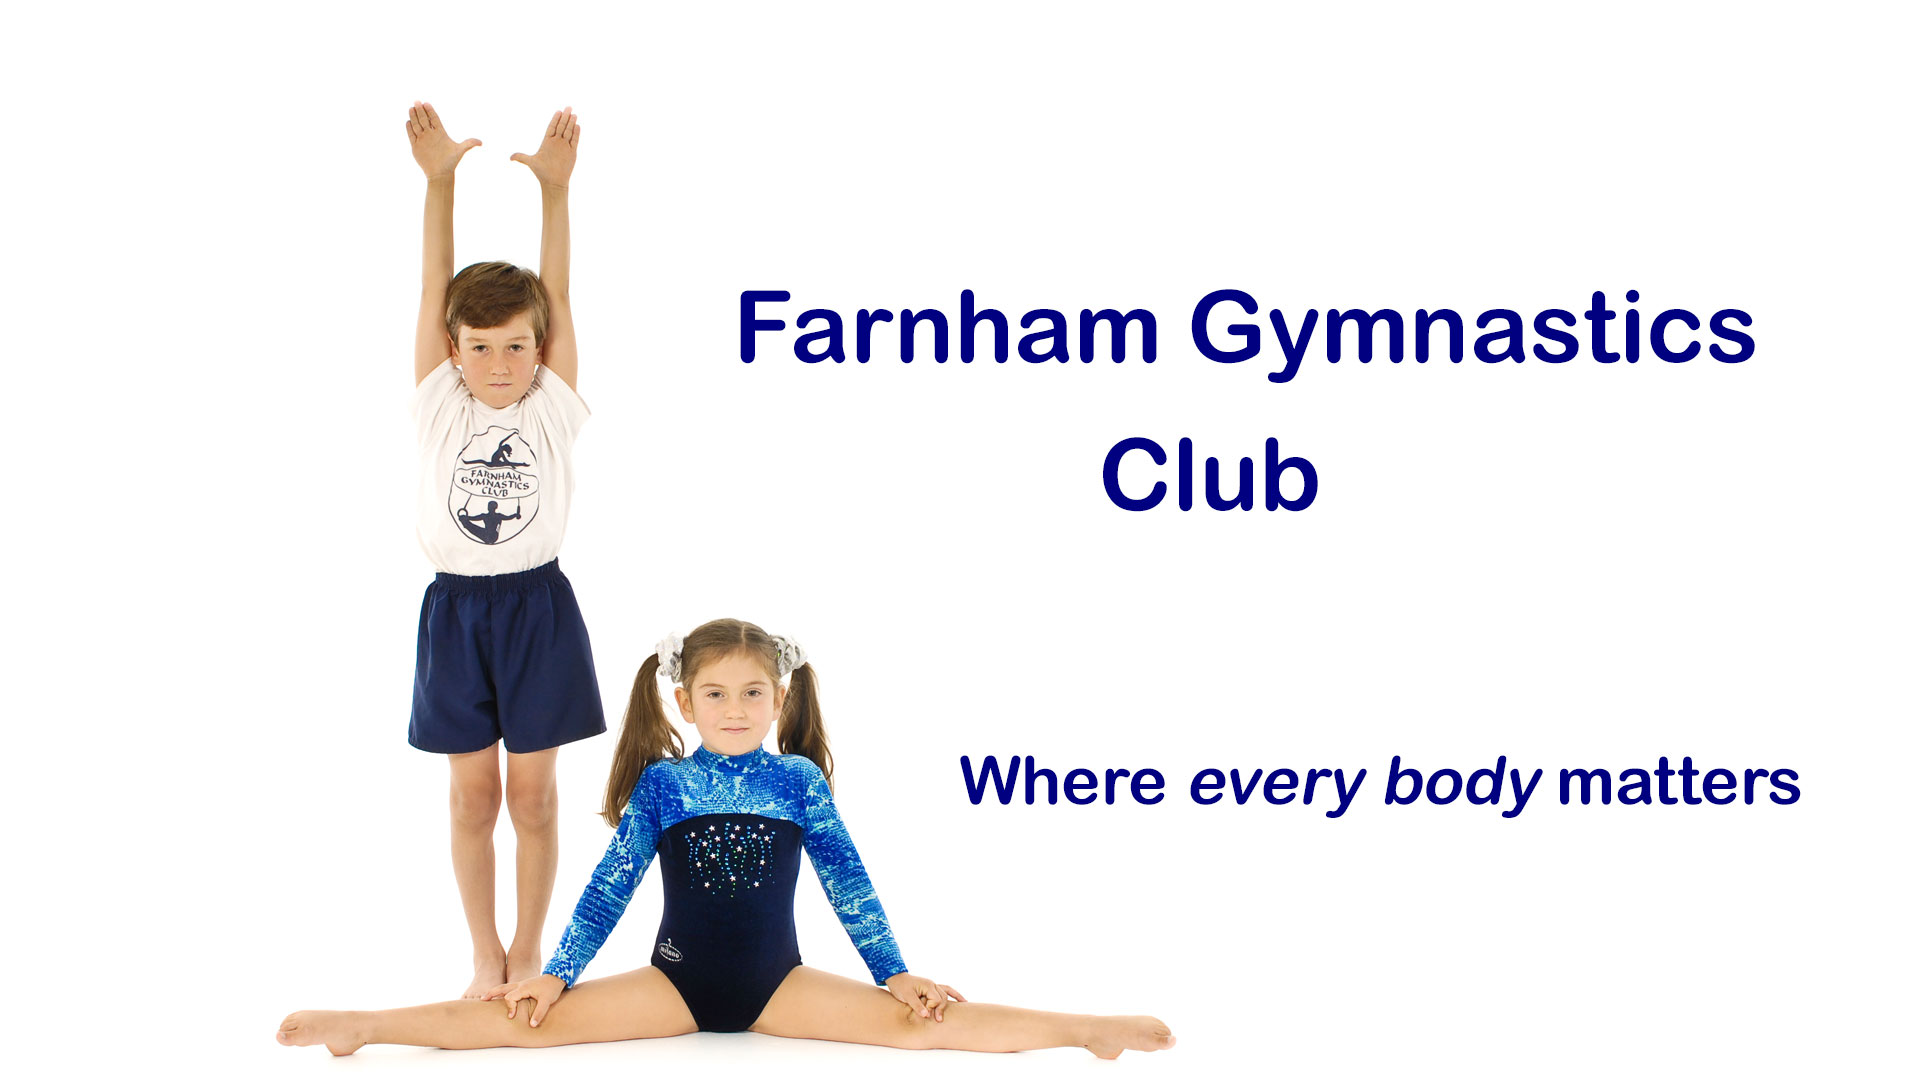 Farnham Gymnastics Club